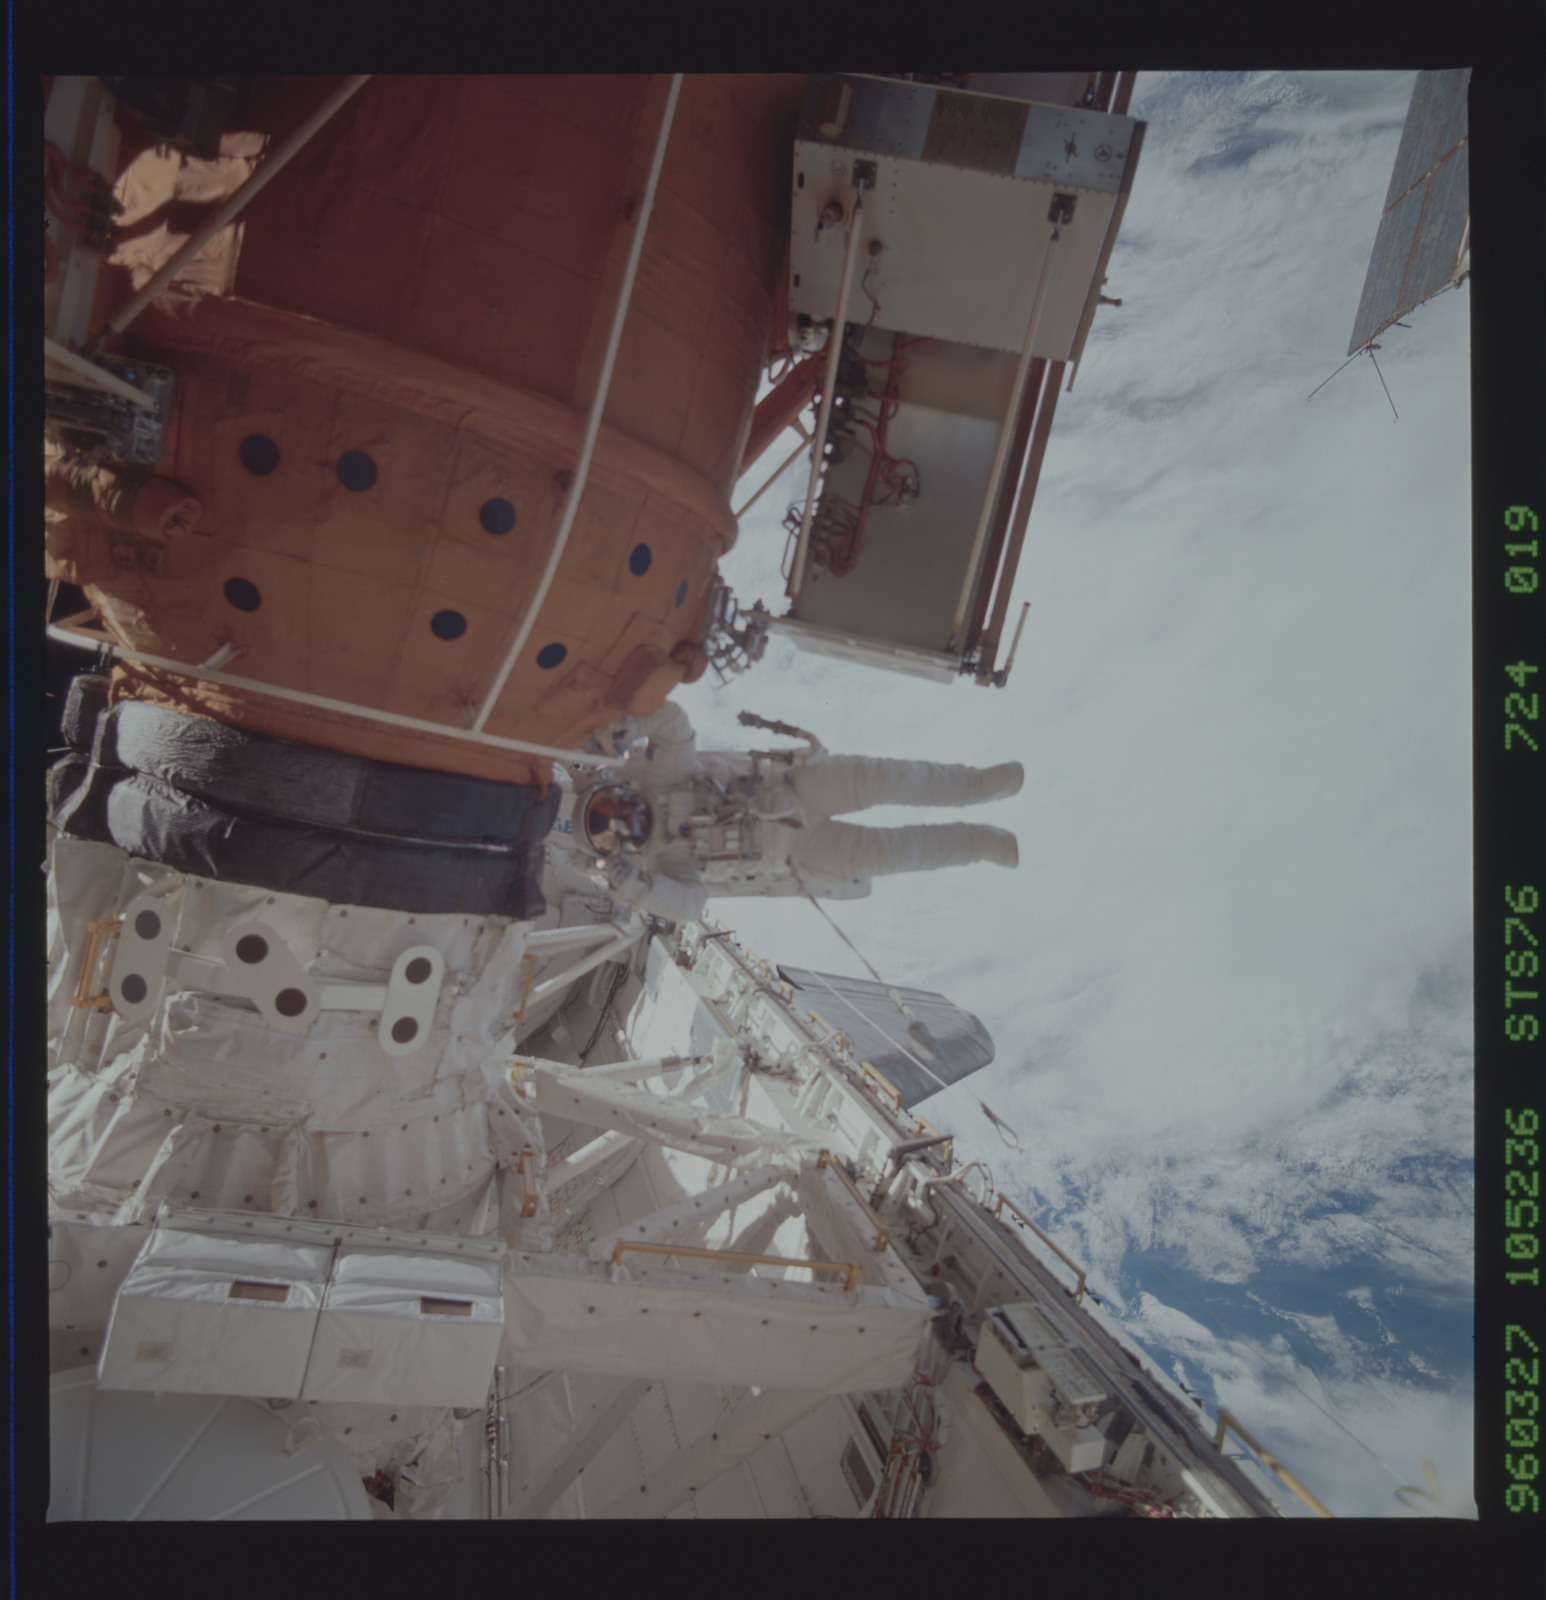 STS076-724-019 - STS-076 - Astronauts Linda Godwin and Michael ``Rich`` Clifford during EVA